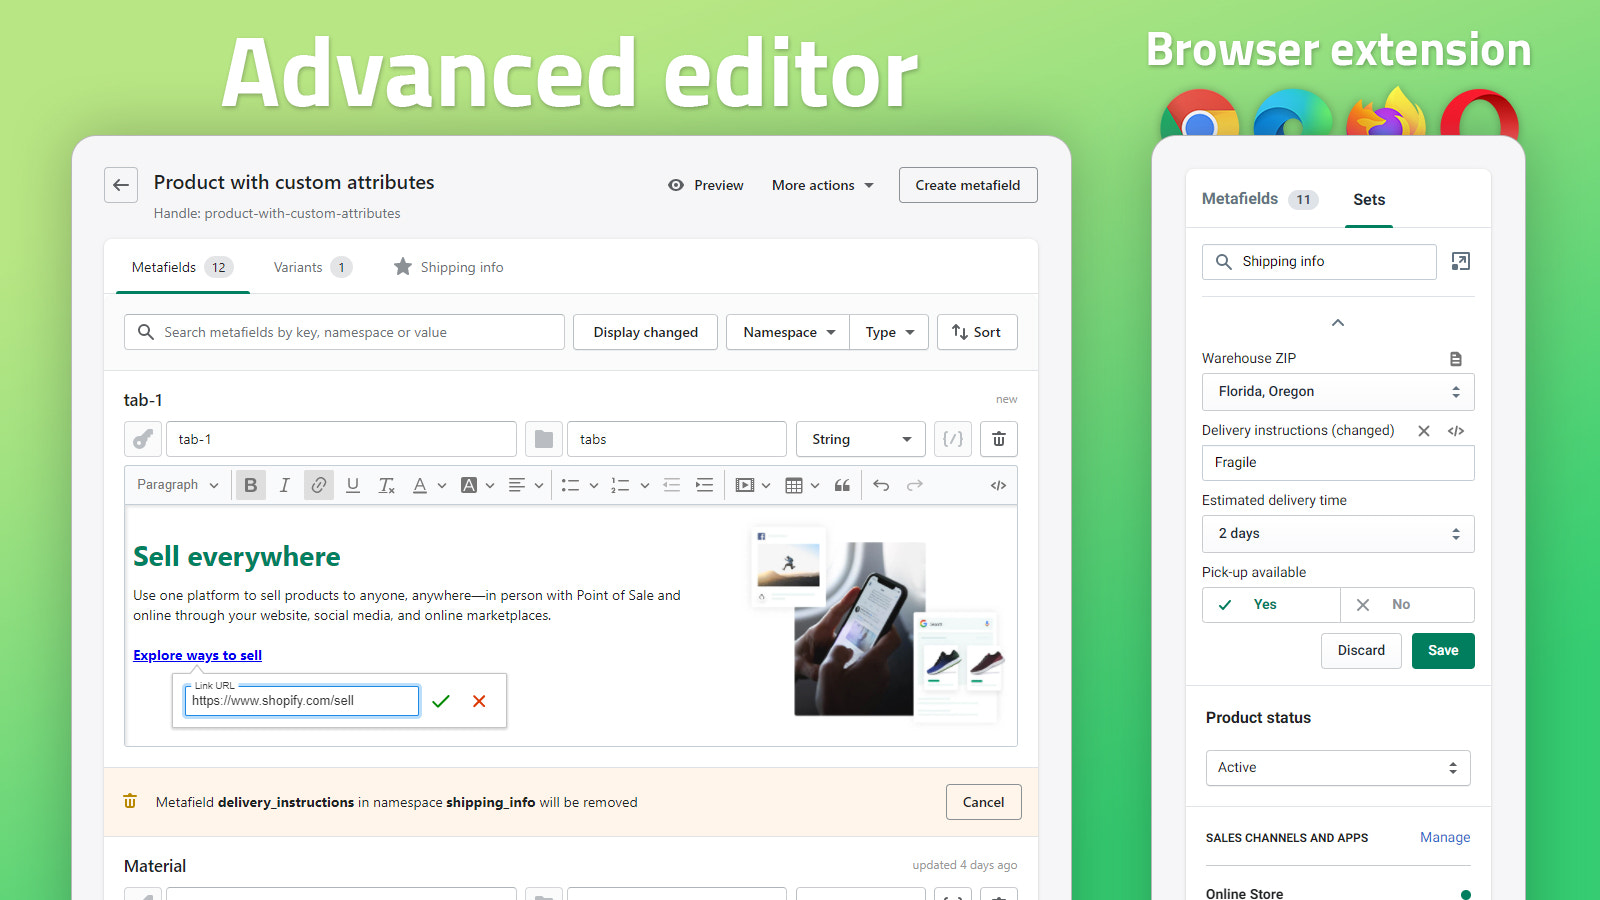 Advanced editor and browser extensicon